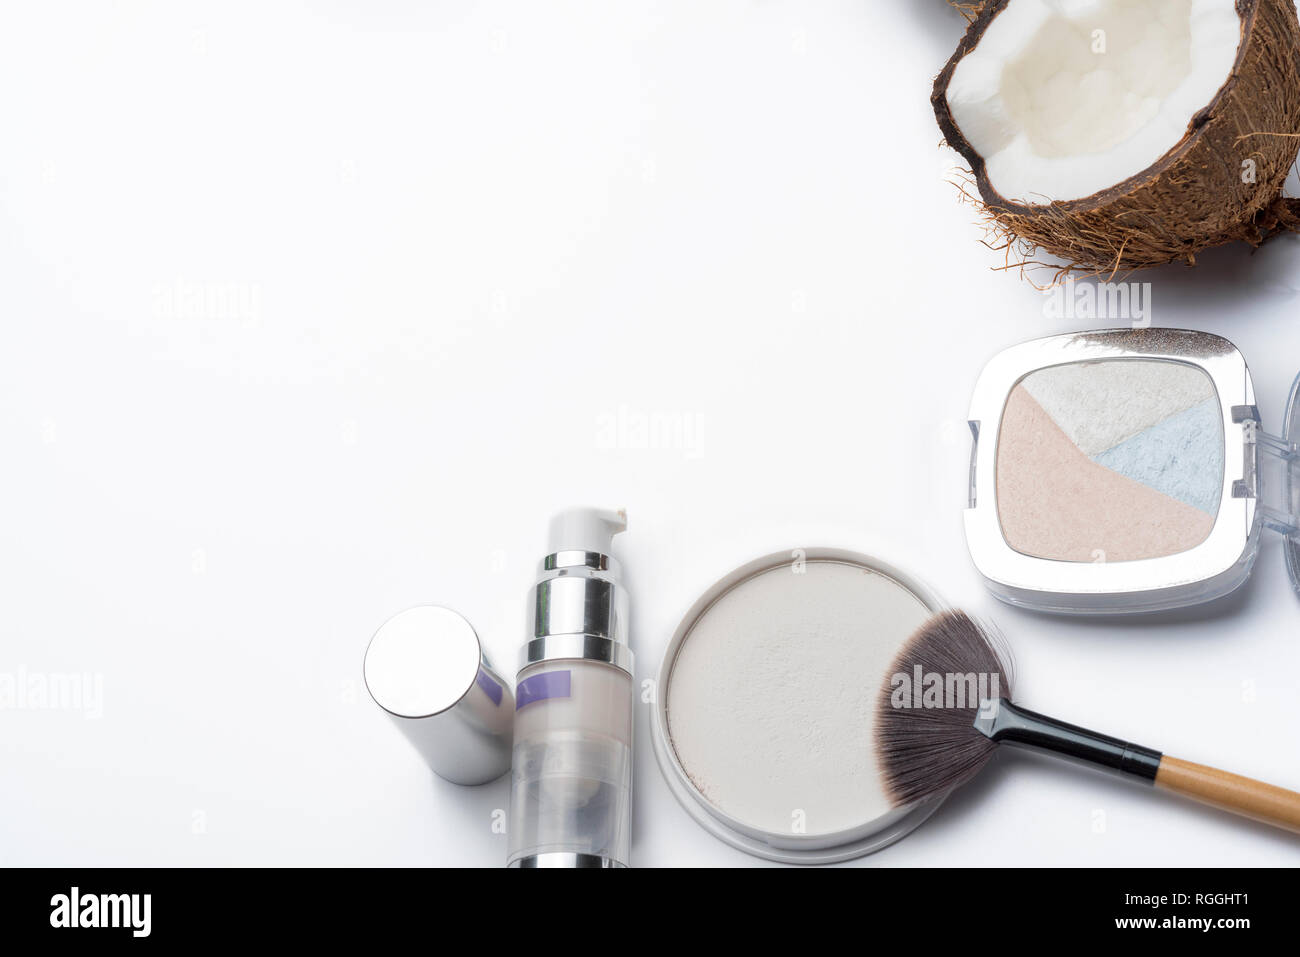 Natural Herbal Skin Care Products Top Ingredients Coconut Isolated Background Makeup Brushes For Face And Cosmetic Products Preparation Facial Ski Stock Photo Alamy